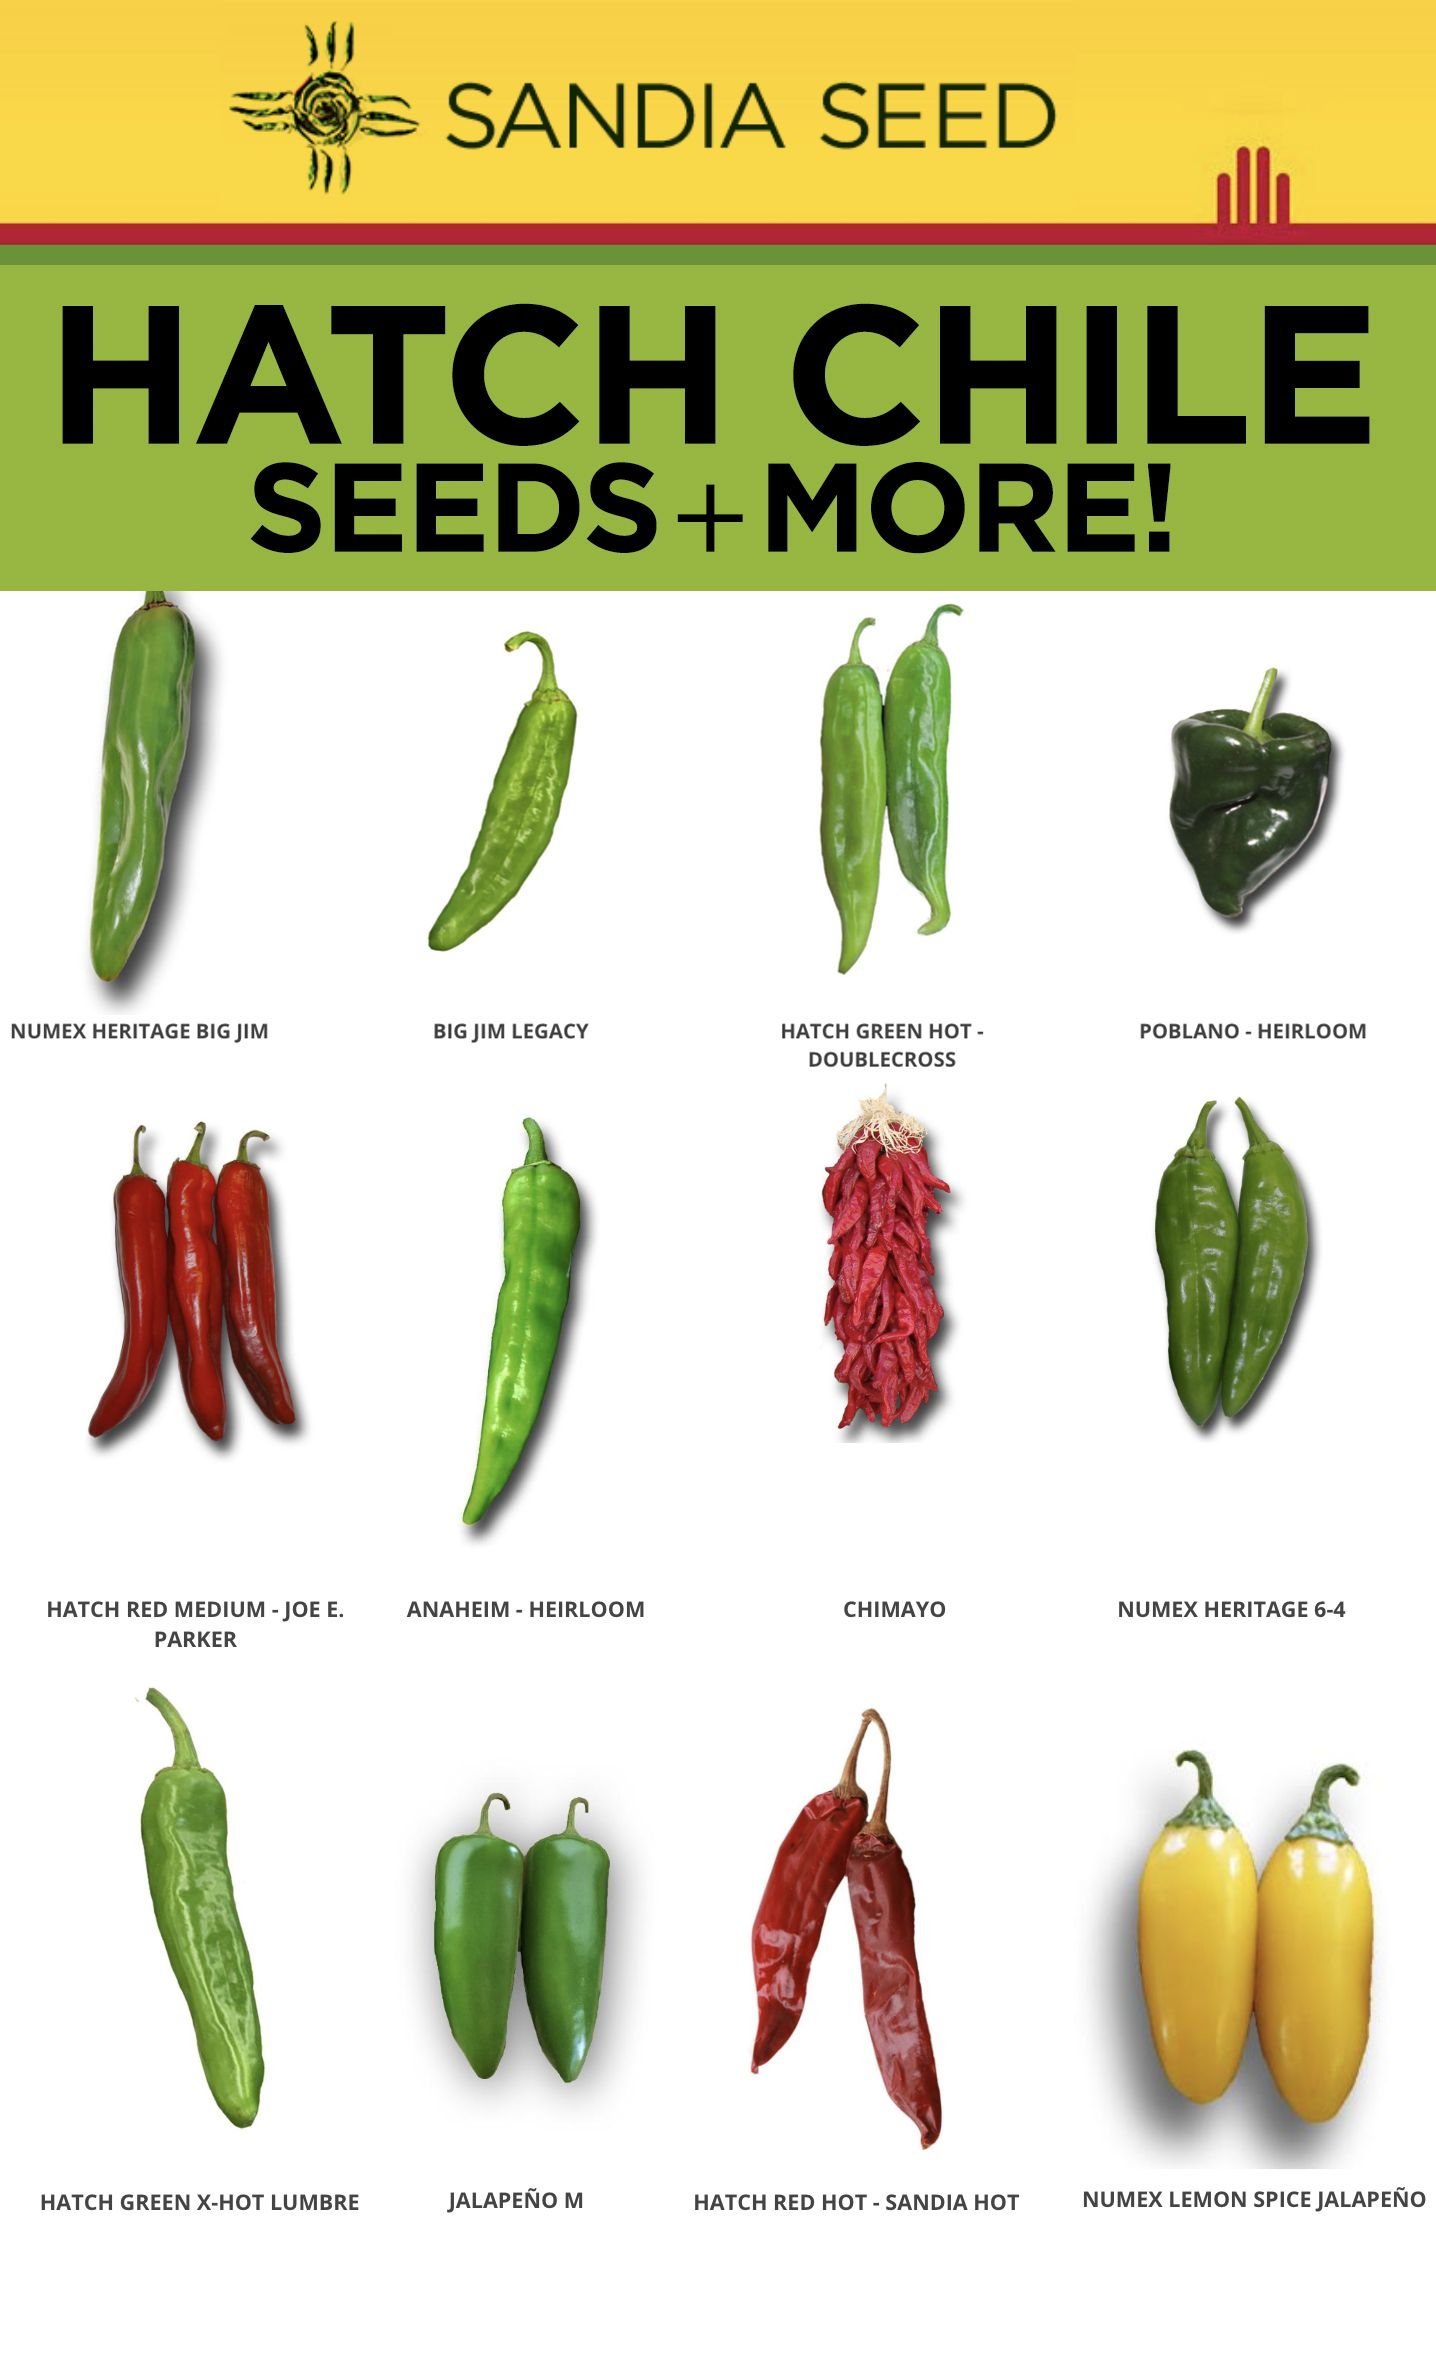 Hatch Chile Seeds Hot Pepper Seeds Sweet Pepper Seeds Heirloom Tomato Seeds Https Www Sandiaseed Co Hatch Chile Hatch Chile Recipes Hatch Green Chili